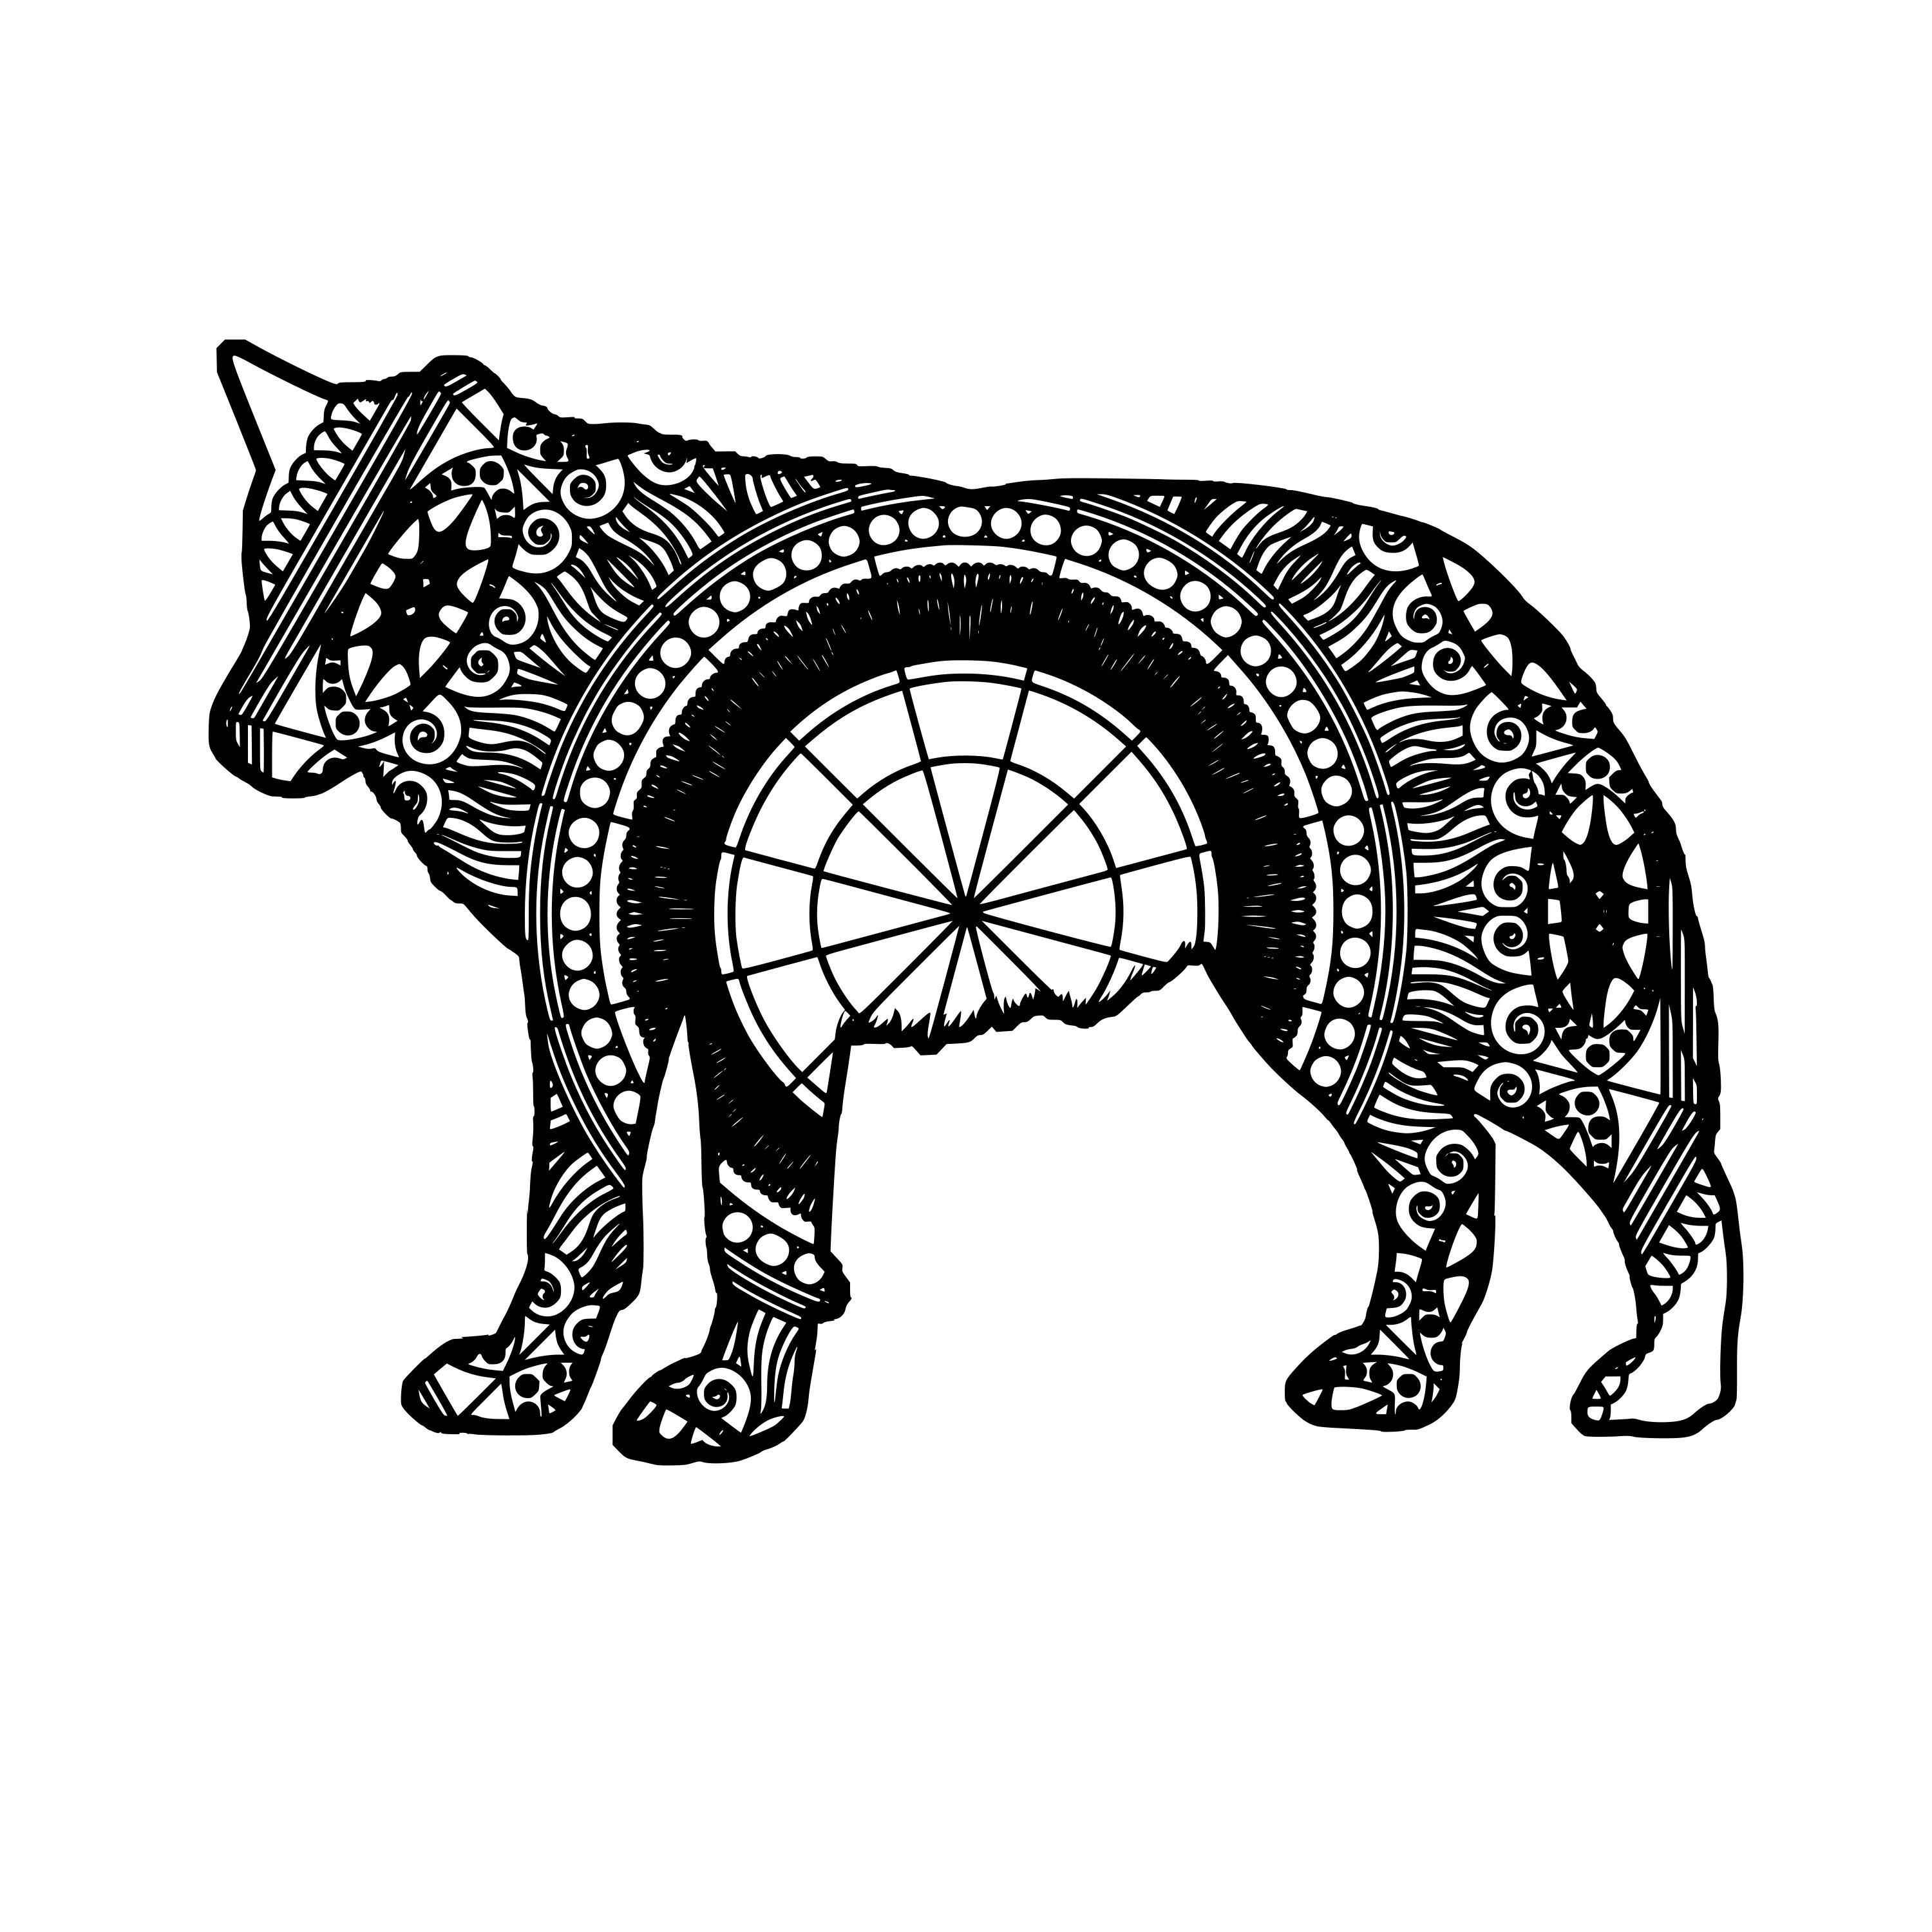 981+ Mandala Svg Wolf – SVG,PNG,EPS & DXF File Include